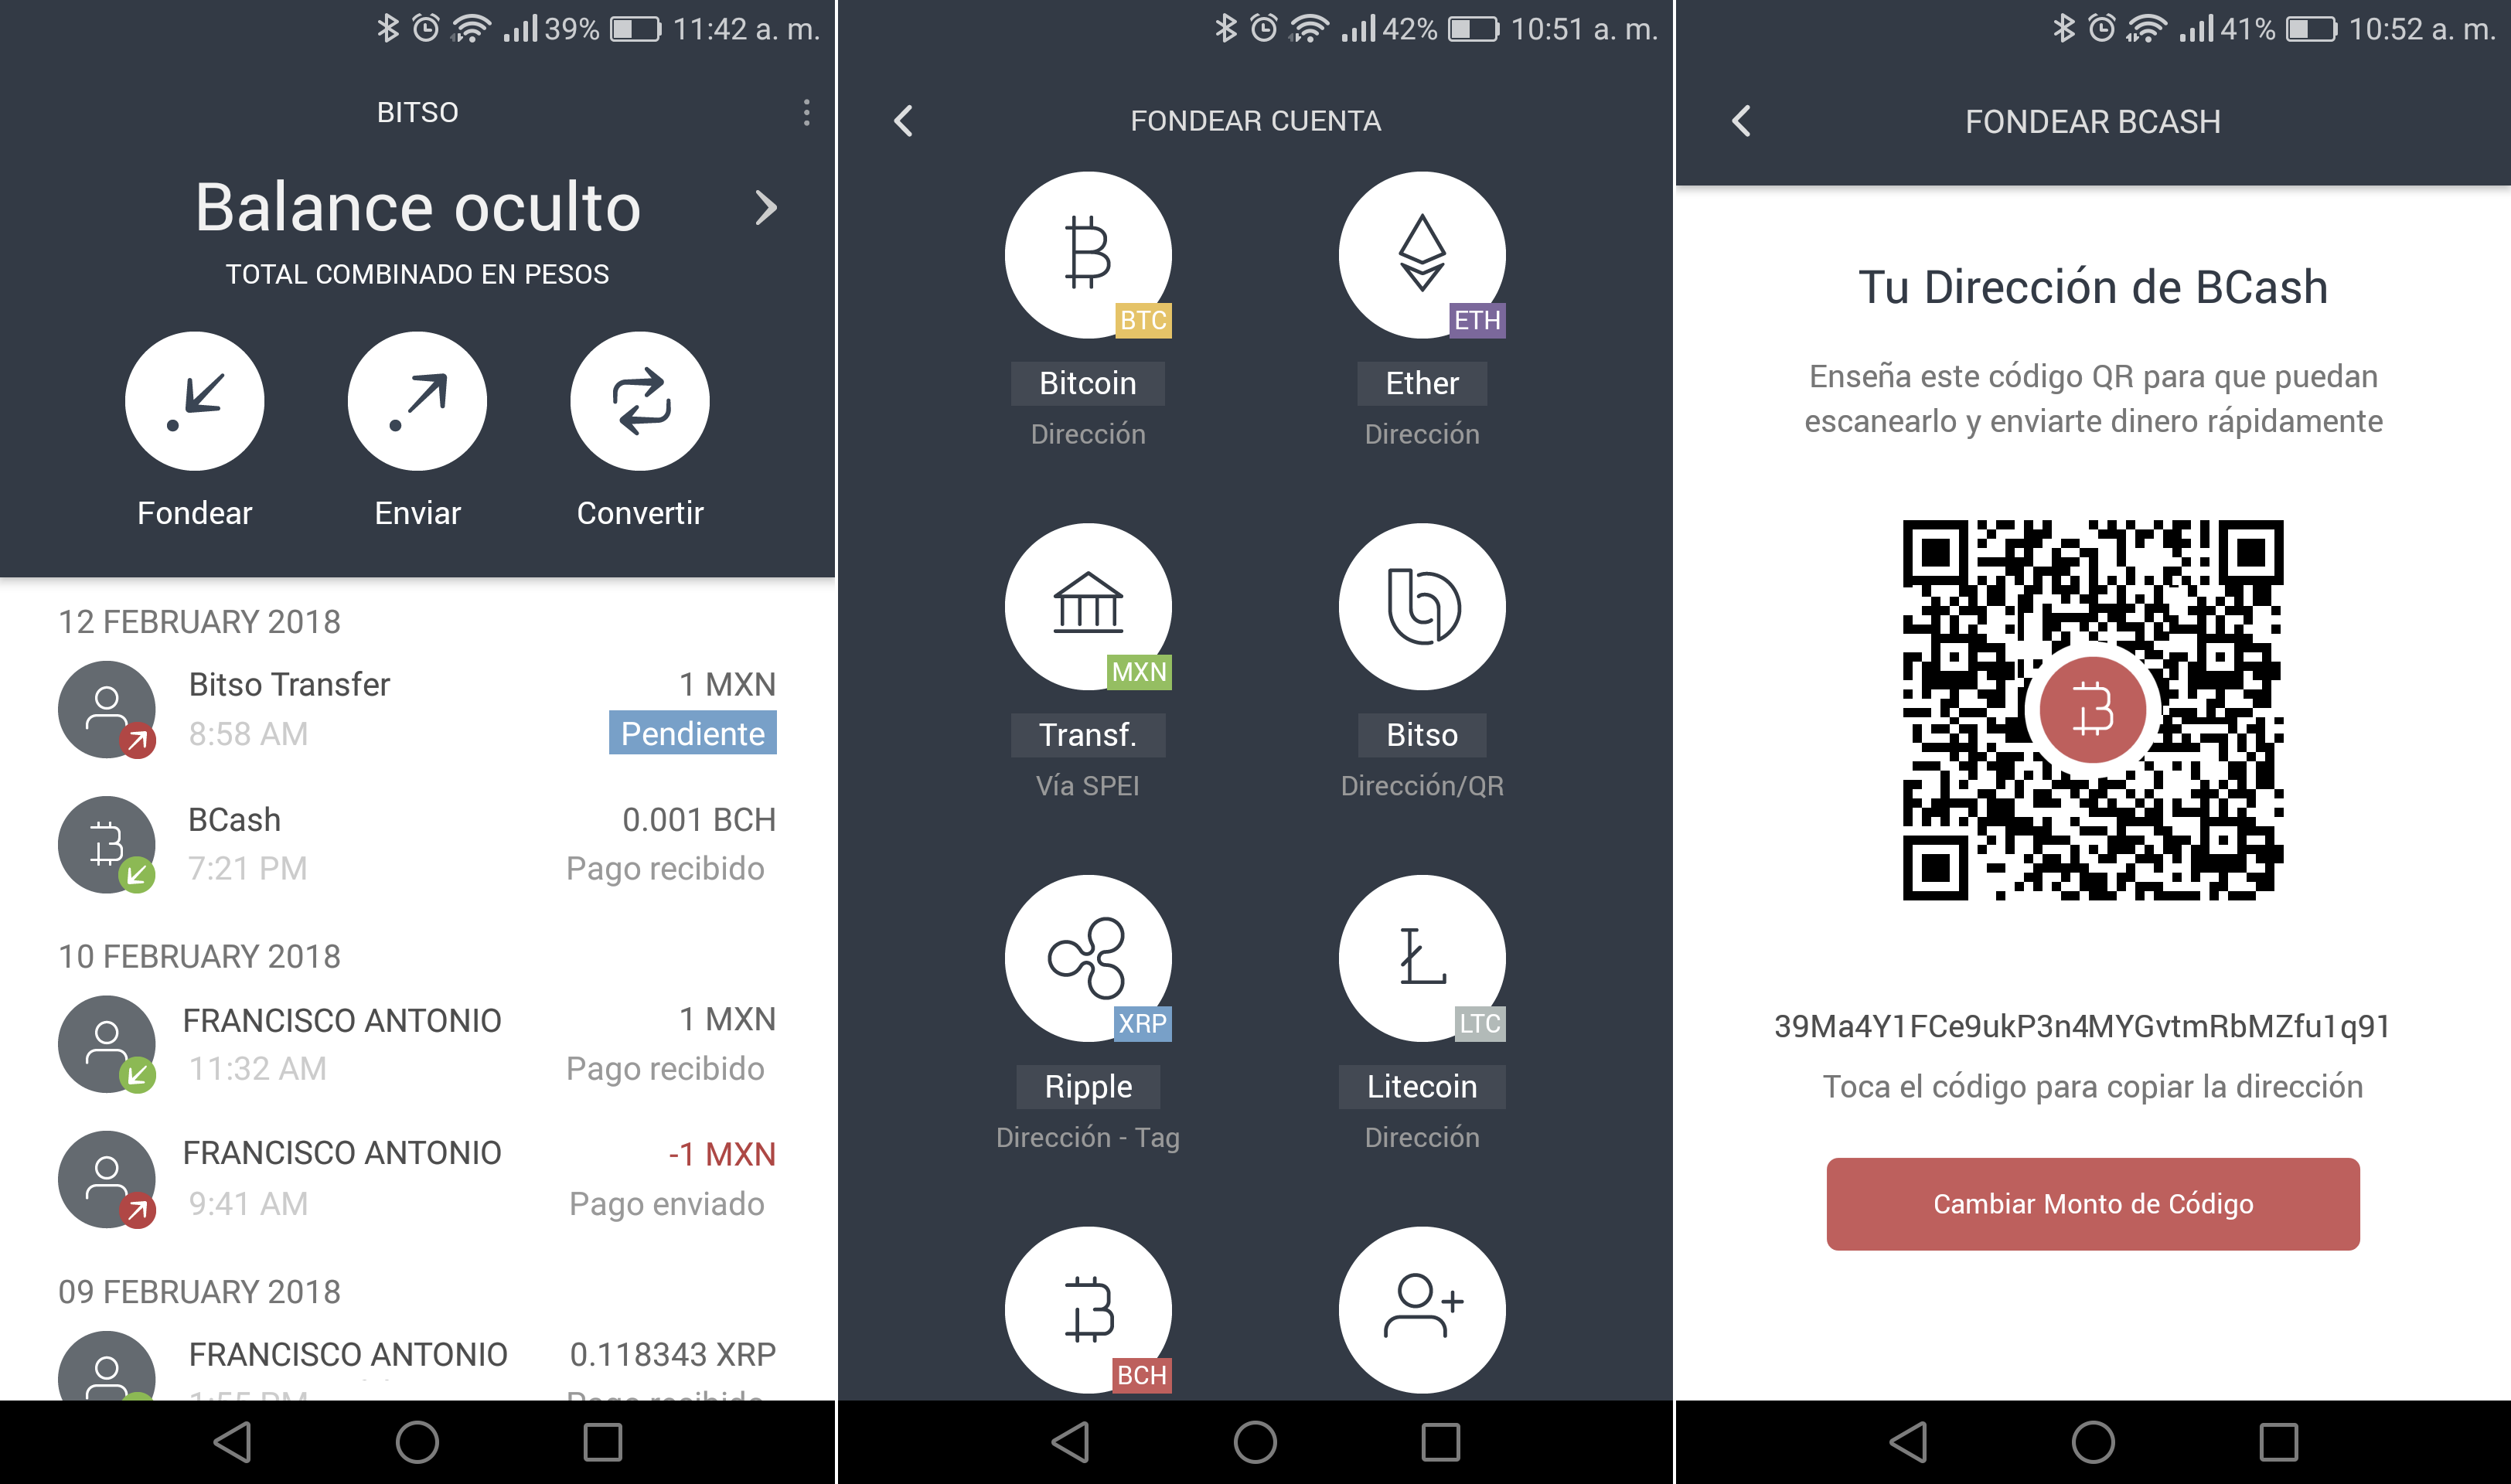 Tutorial: How to Fund or Send Currency on Bitso App with a